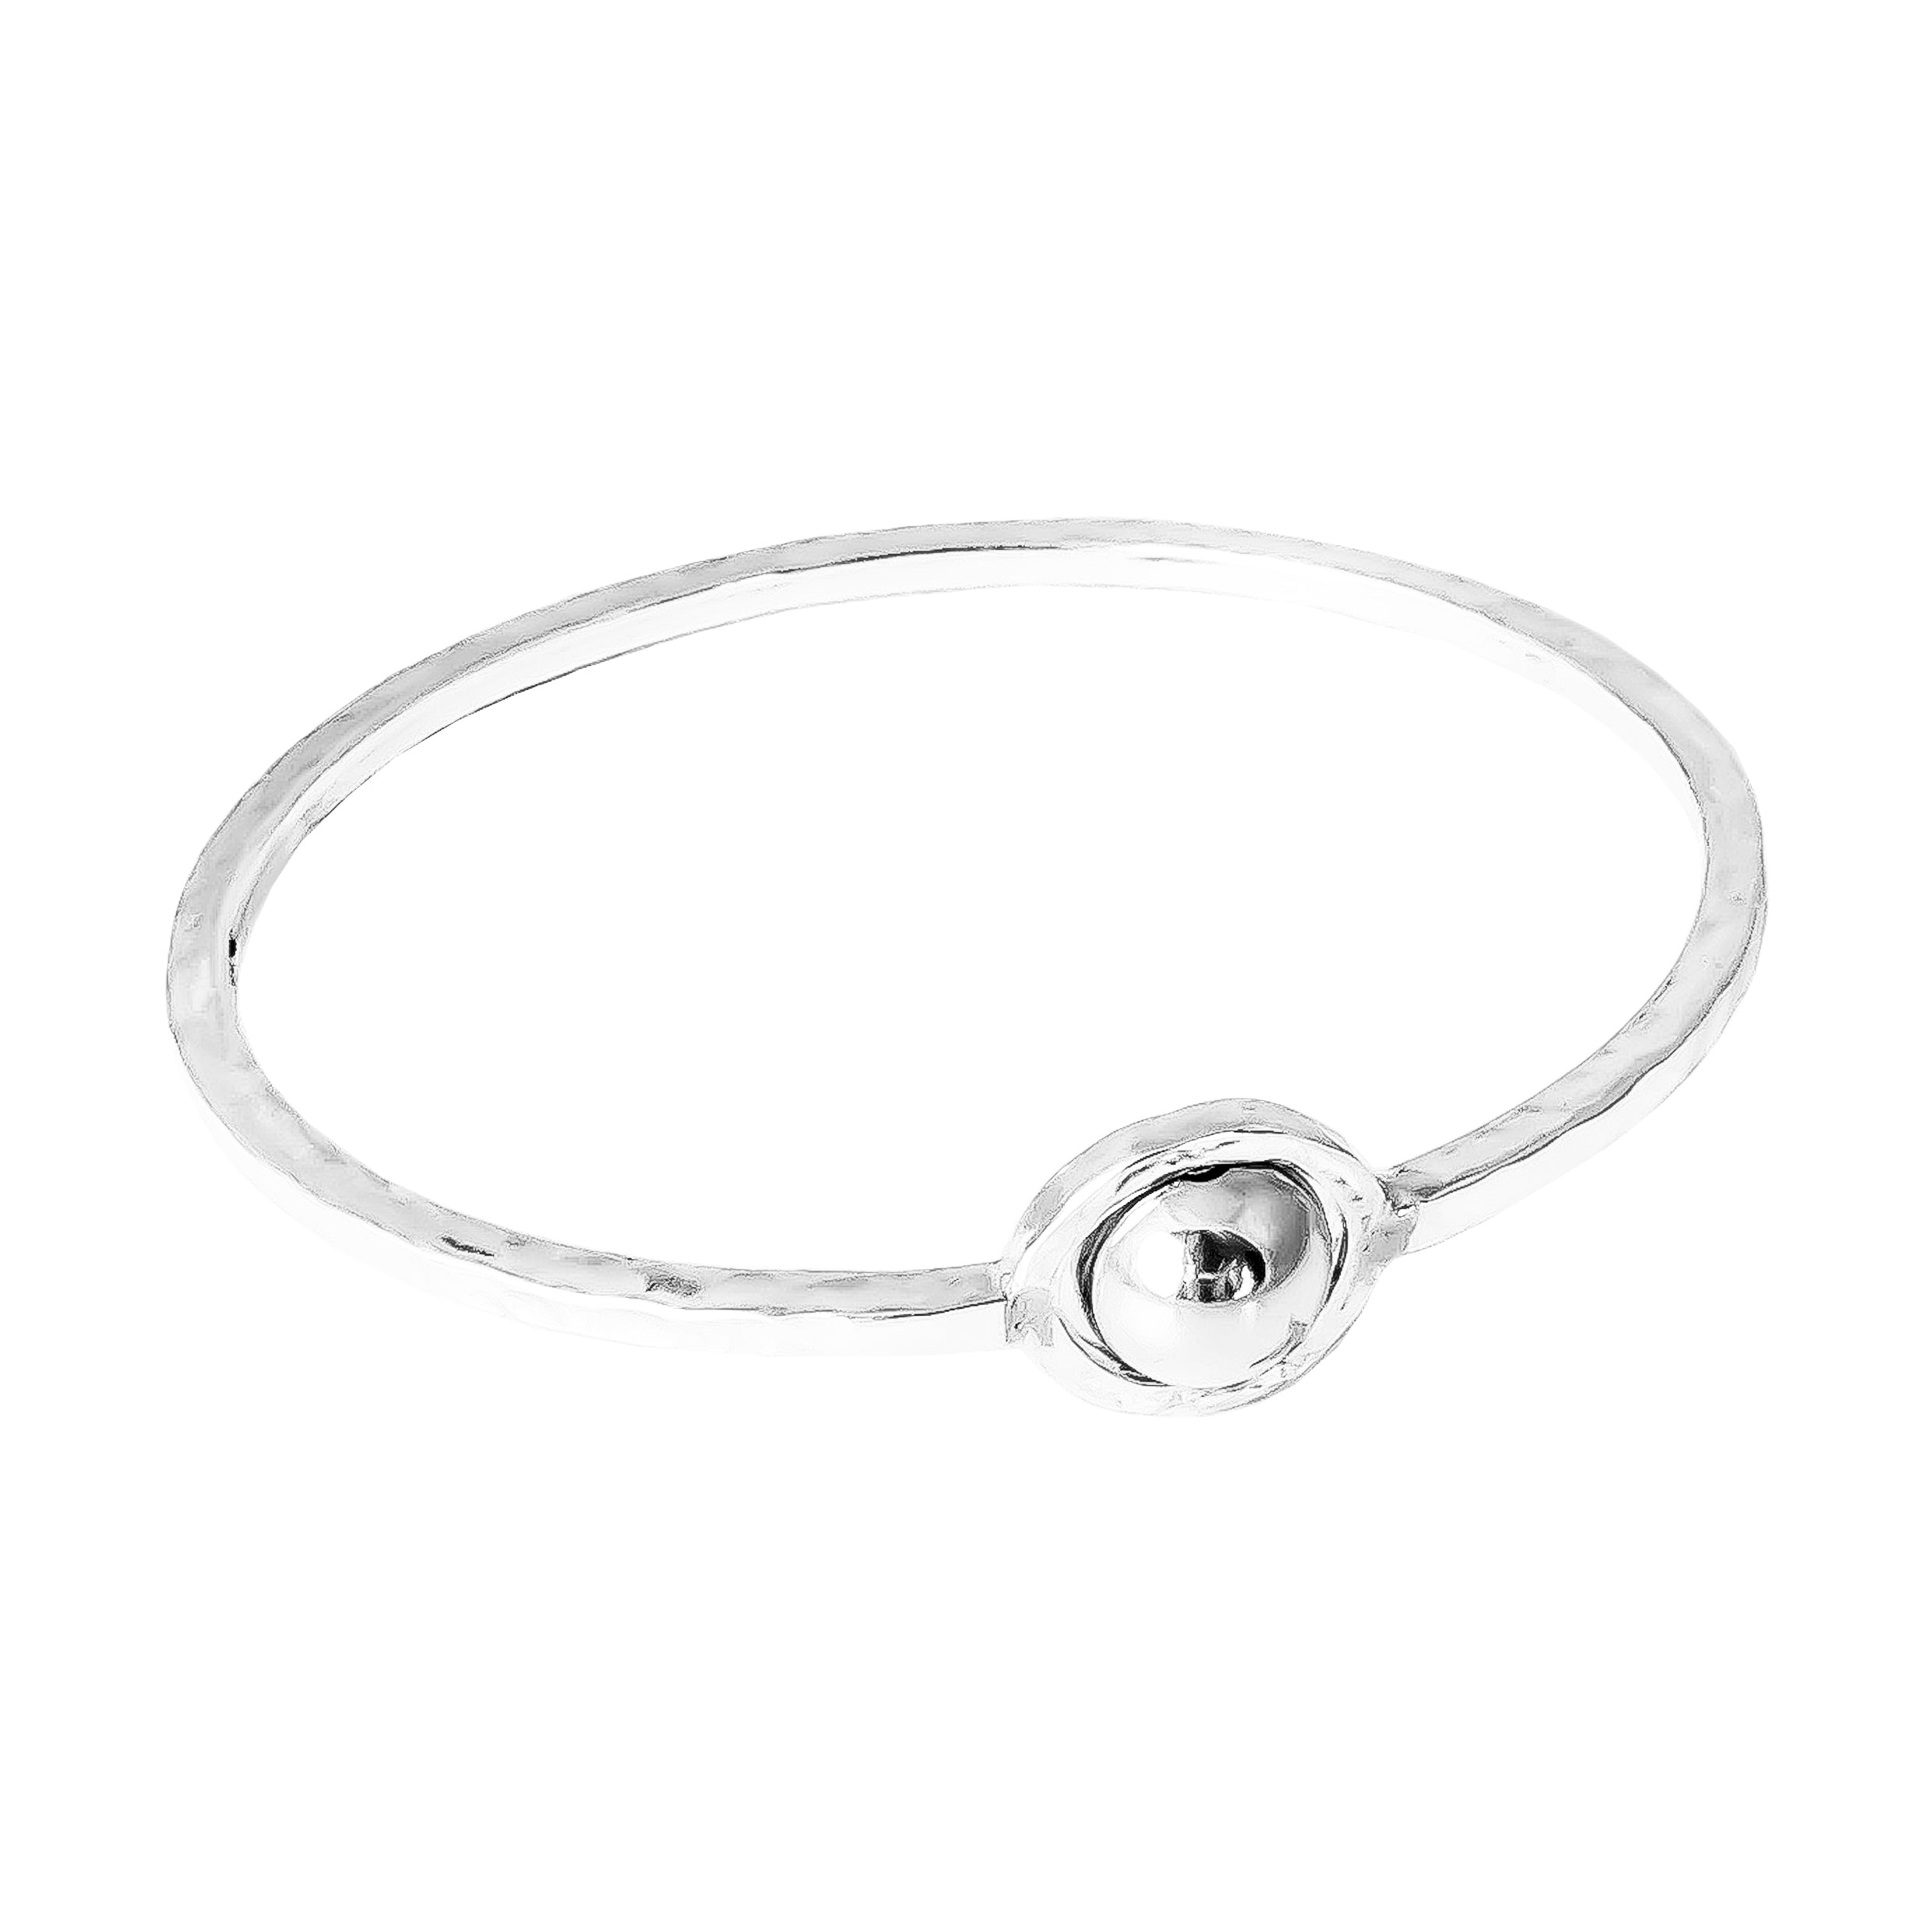 Atticus Large Feature Oval Hammered Bangle | Polished Silver Detail